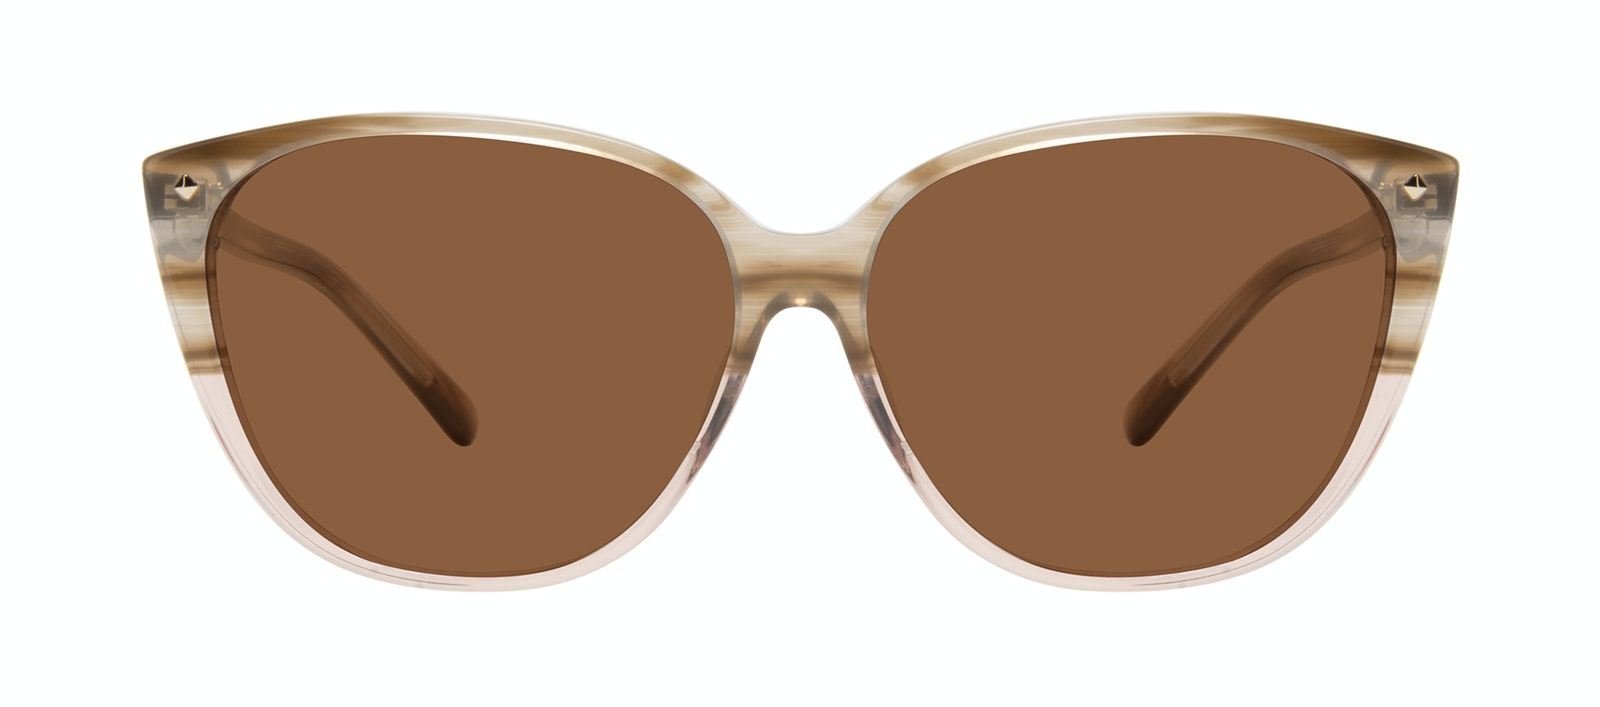 Affordable Fashion Glasses Cat Eye Sunglasses Women Icone Rosewood Front